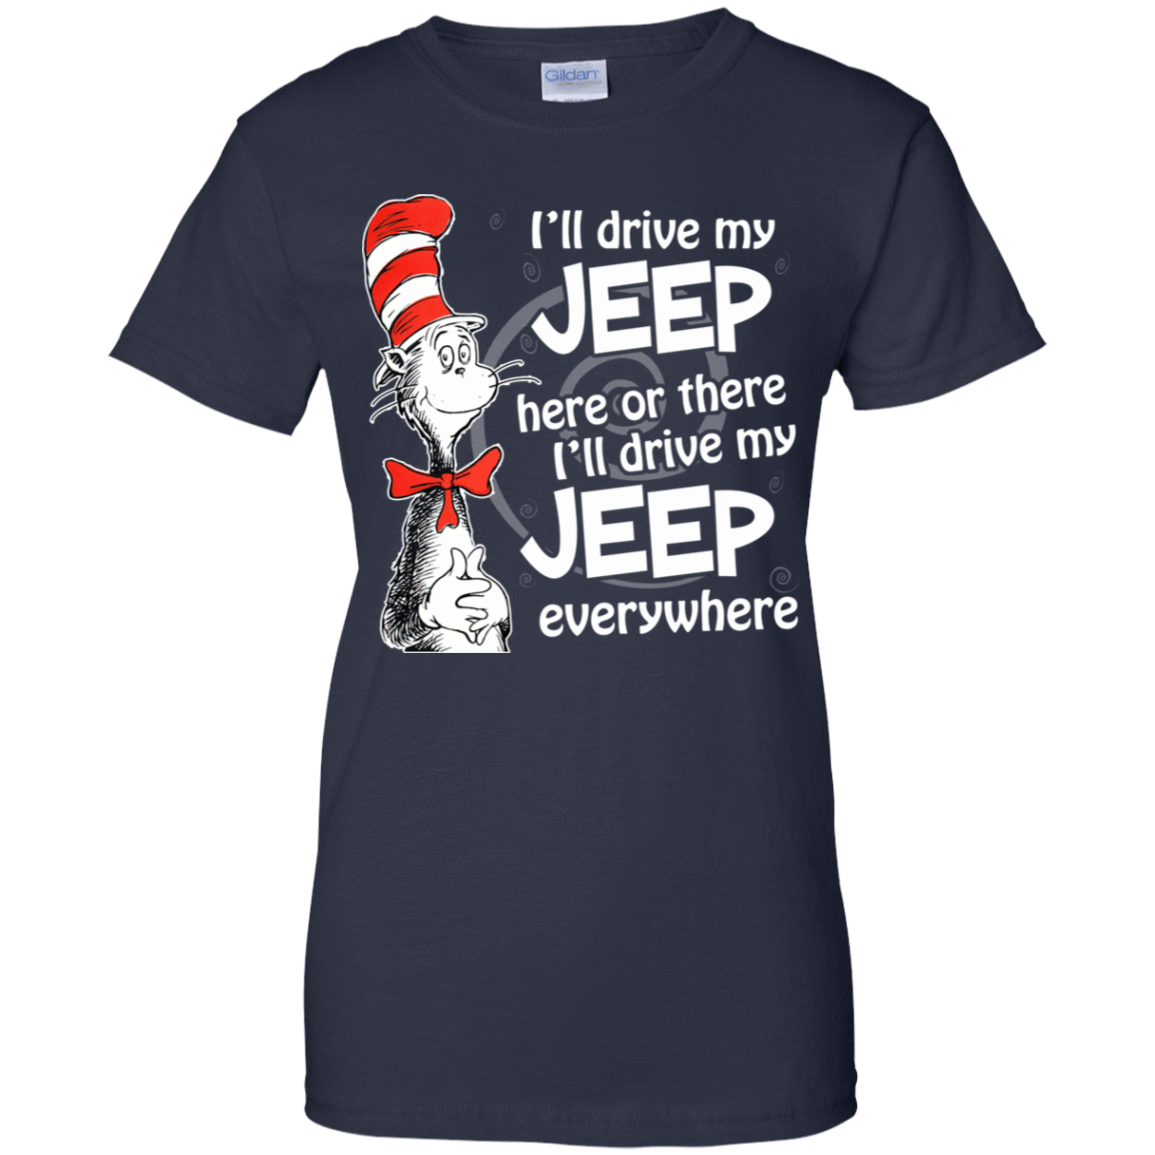 I'll Drive My Jeep Here Or There I'll Driver My Jeep Everywhere 939-9259-73422718-44765 - Tee Ript